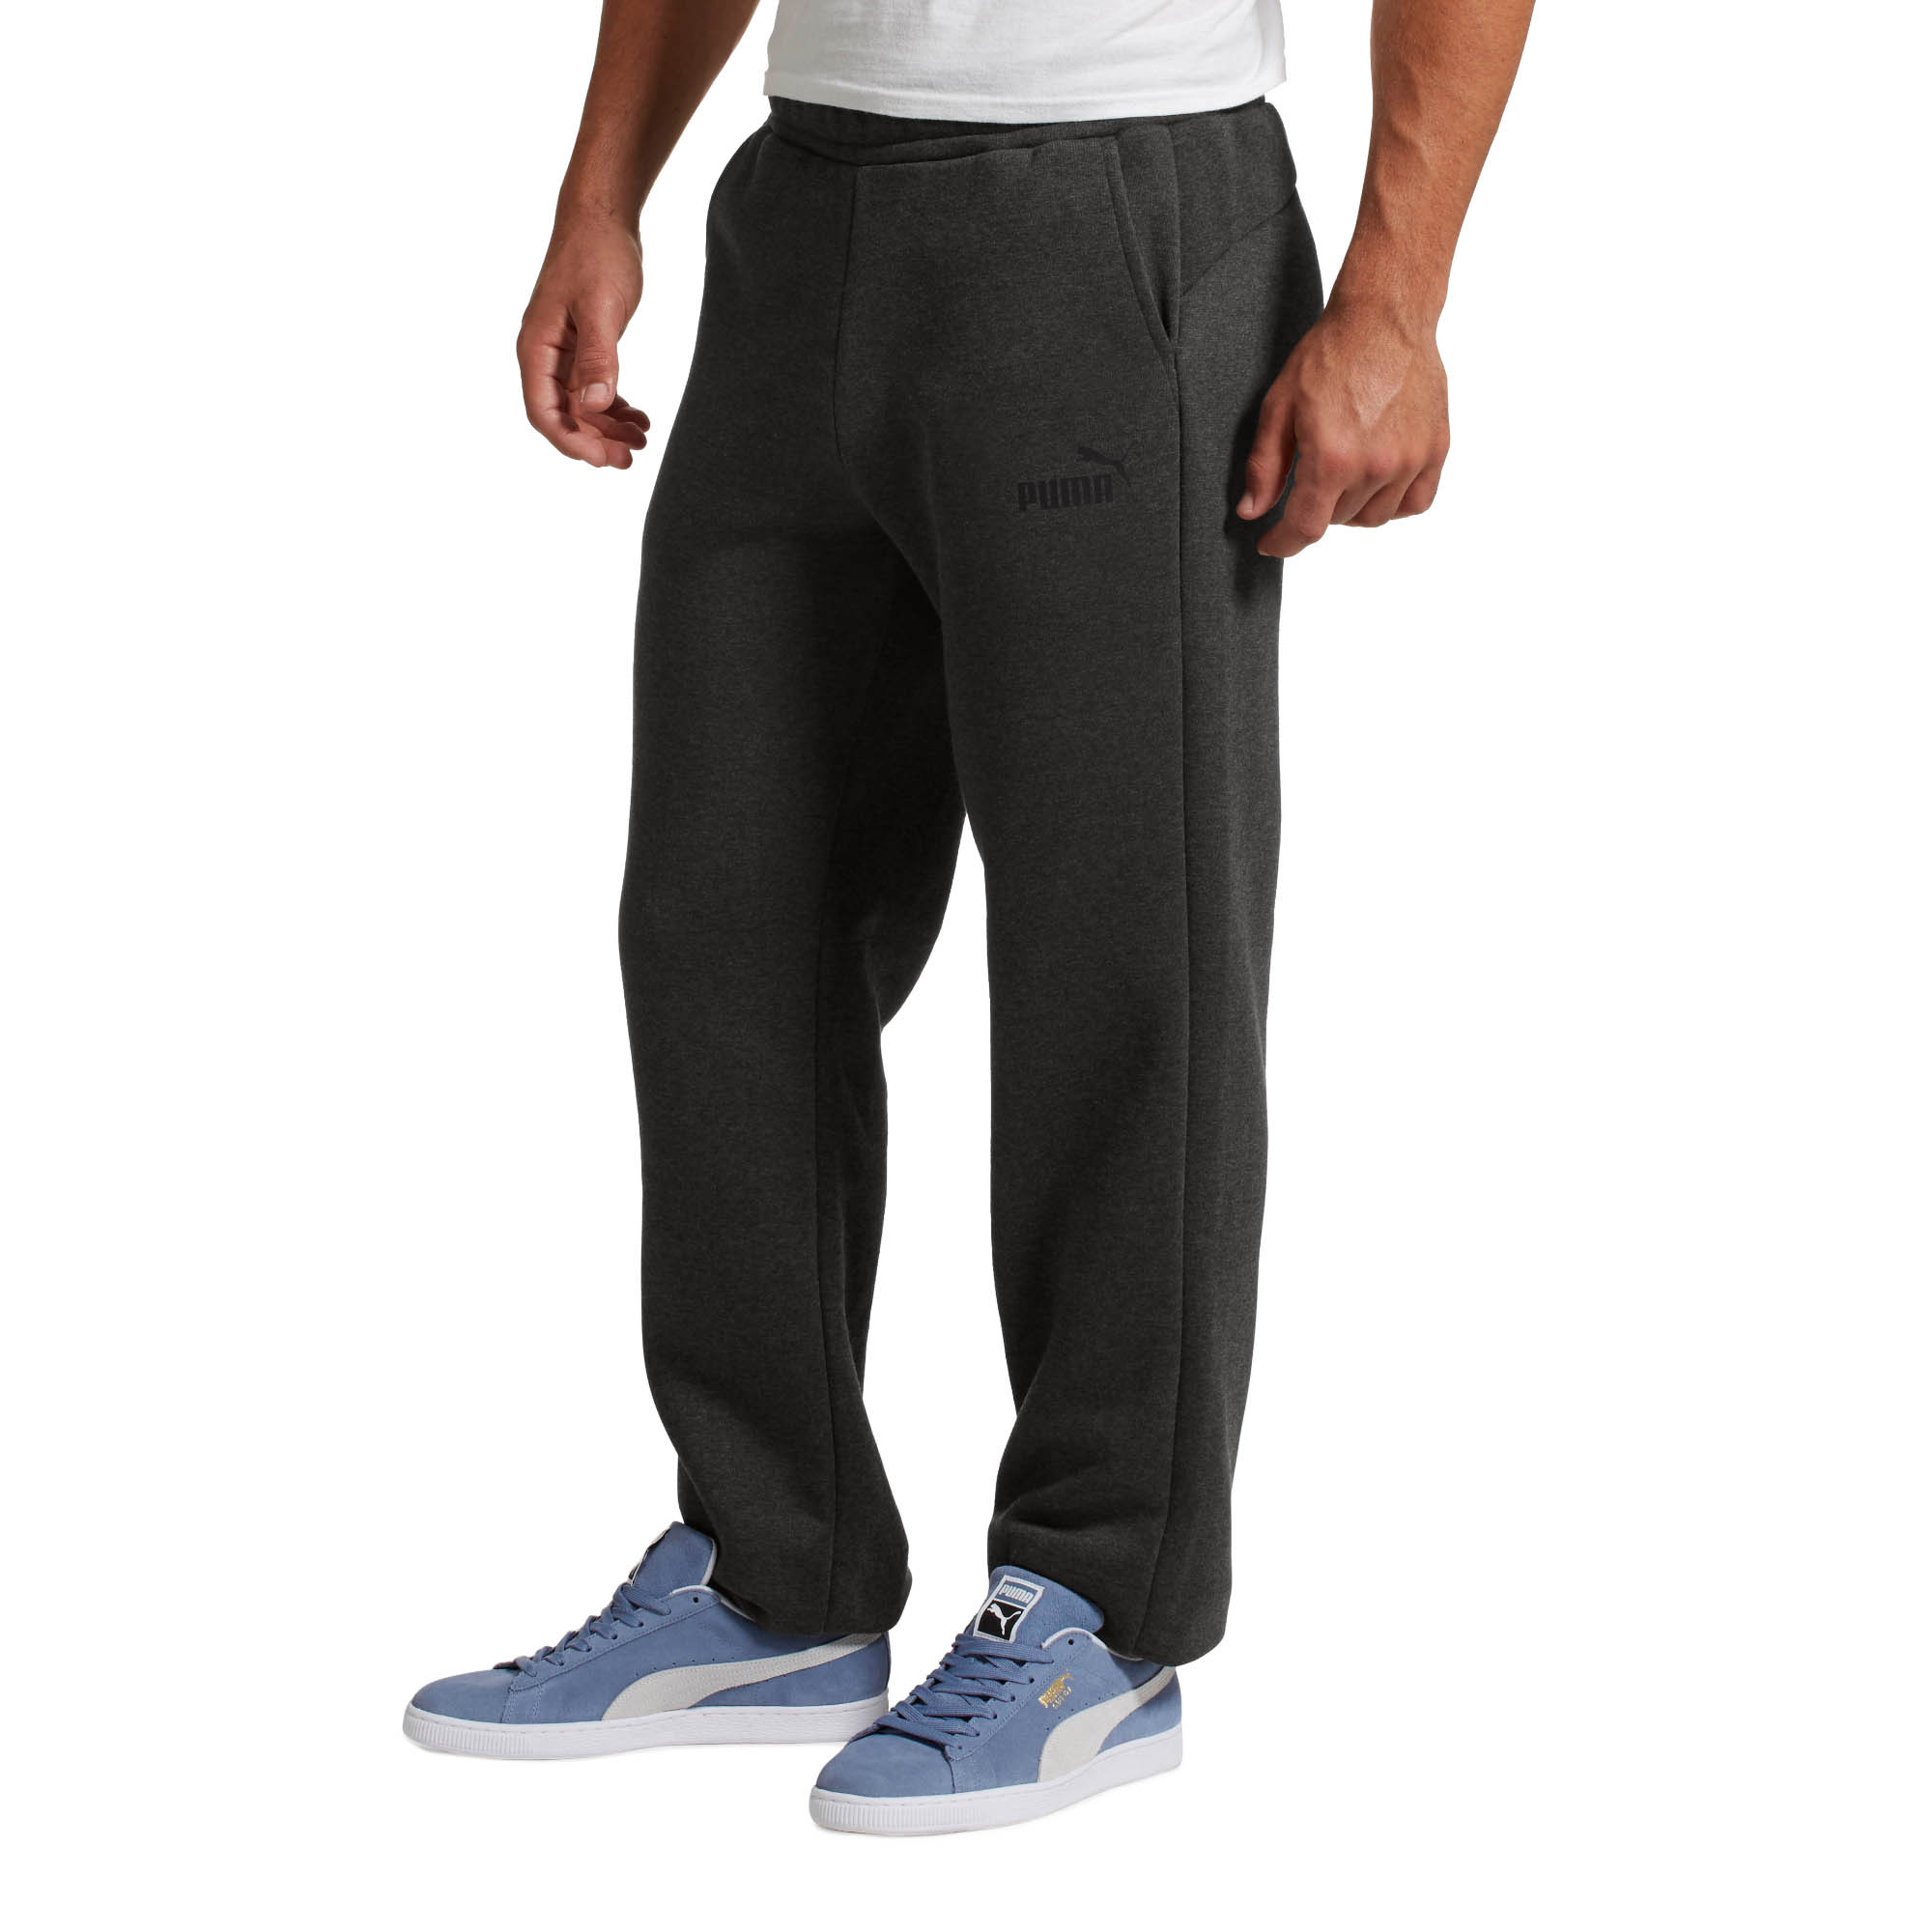 PUMA-Eseential-Logo-Full-Length-Pants-Men-Knitted-Pants-Basics thumbnail 5